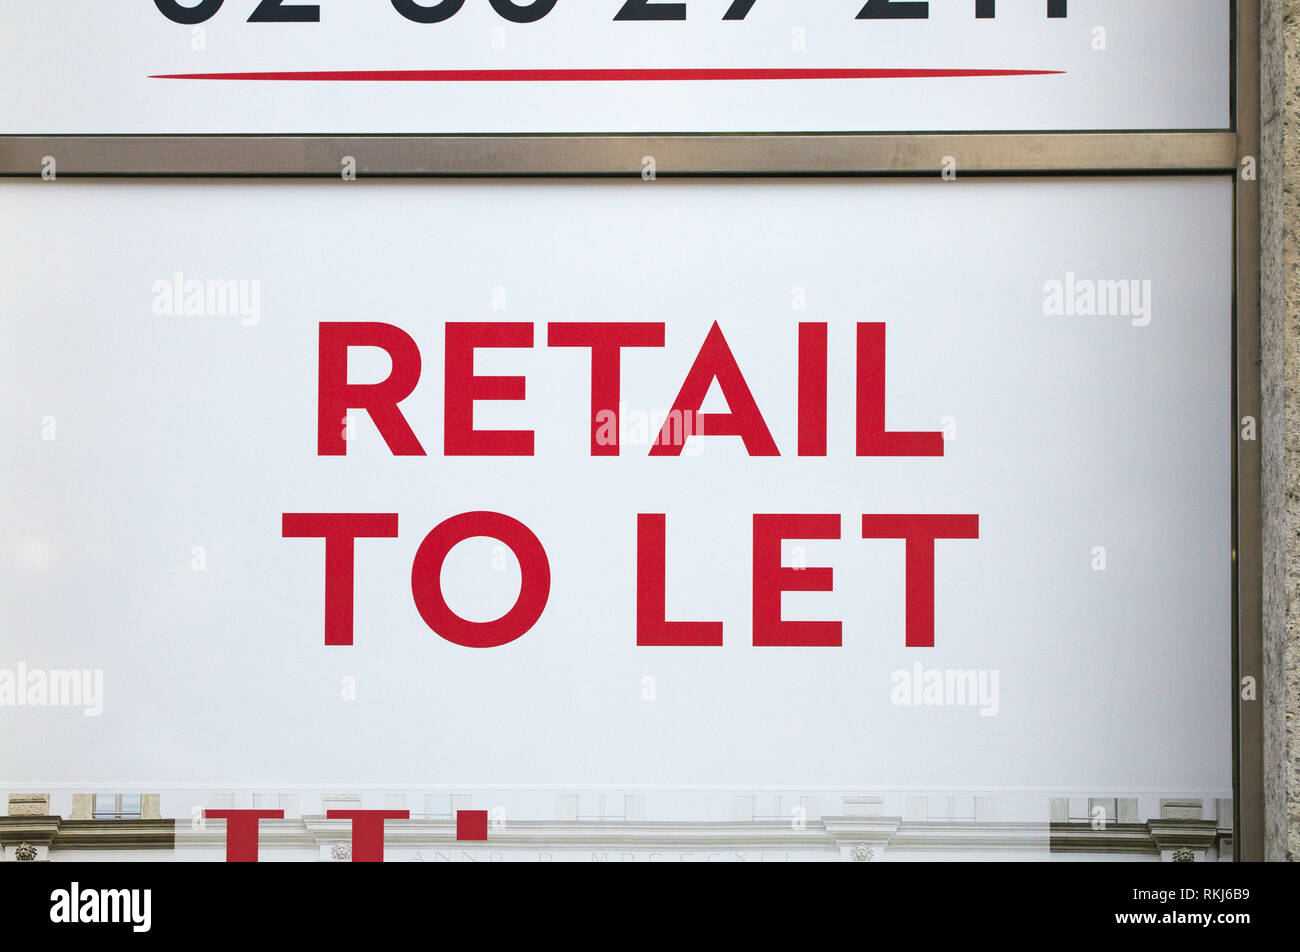 RETAIL TO LET sign - Stock Image